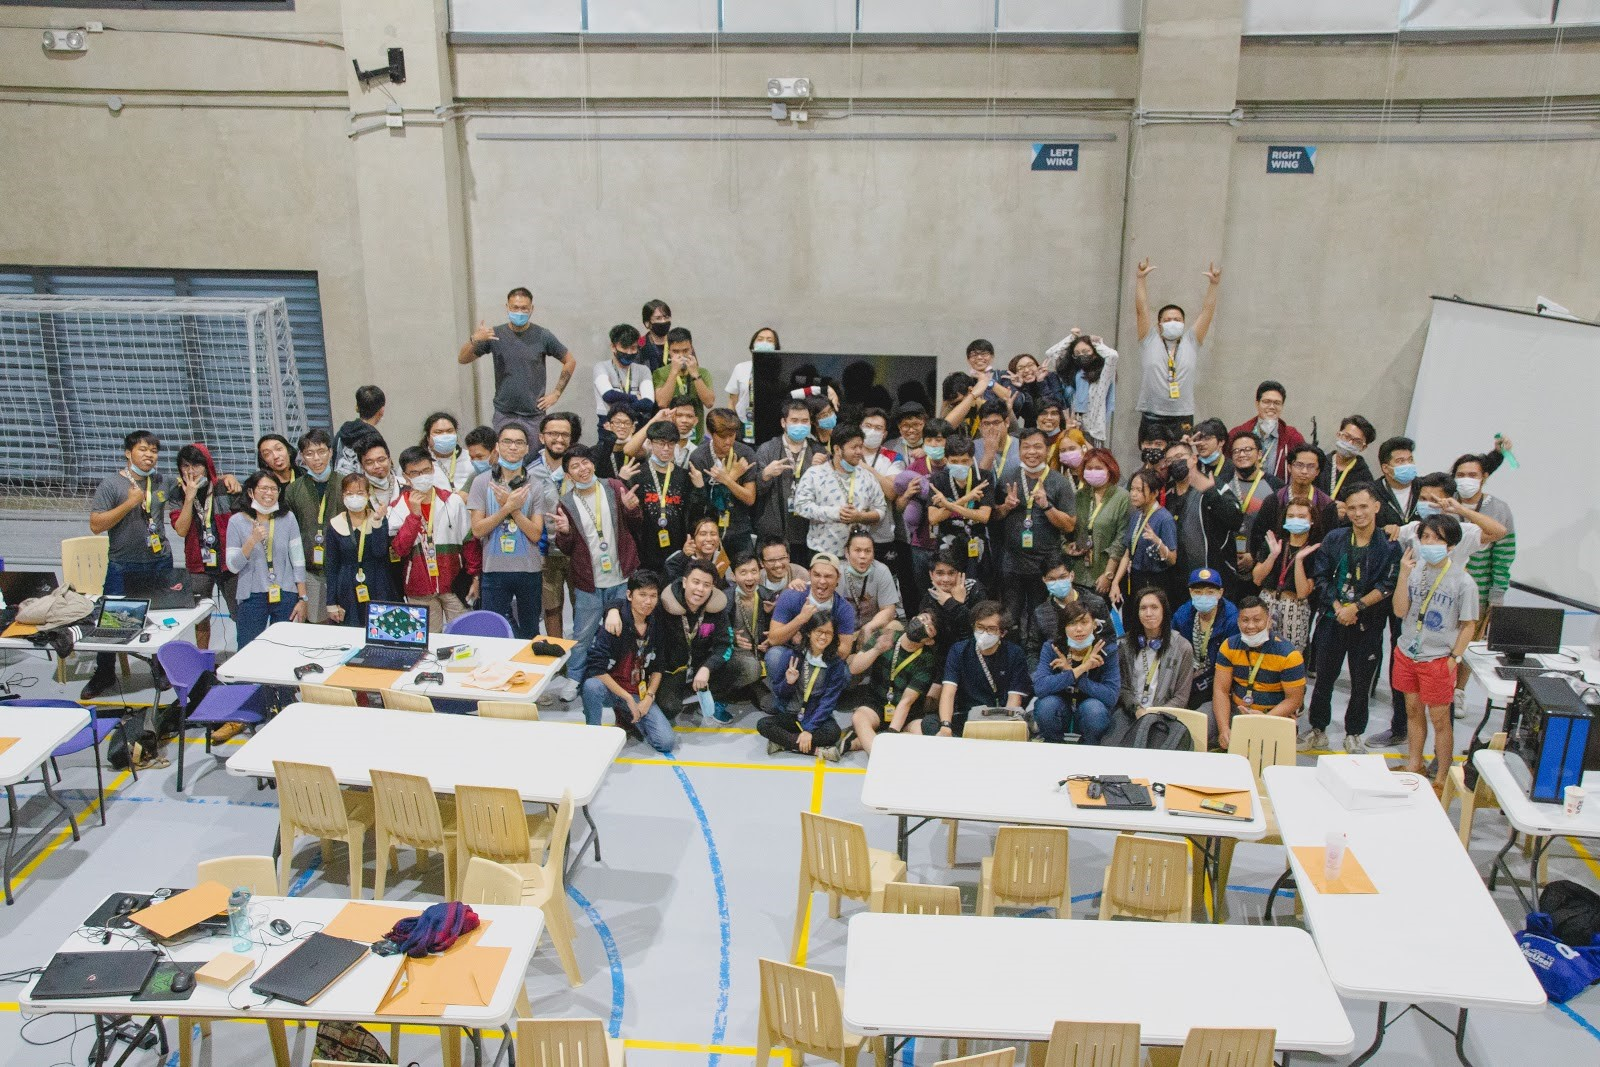 The Jammers of the 2020 Global Game Jam in CIIT